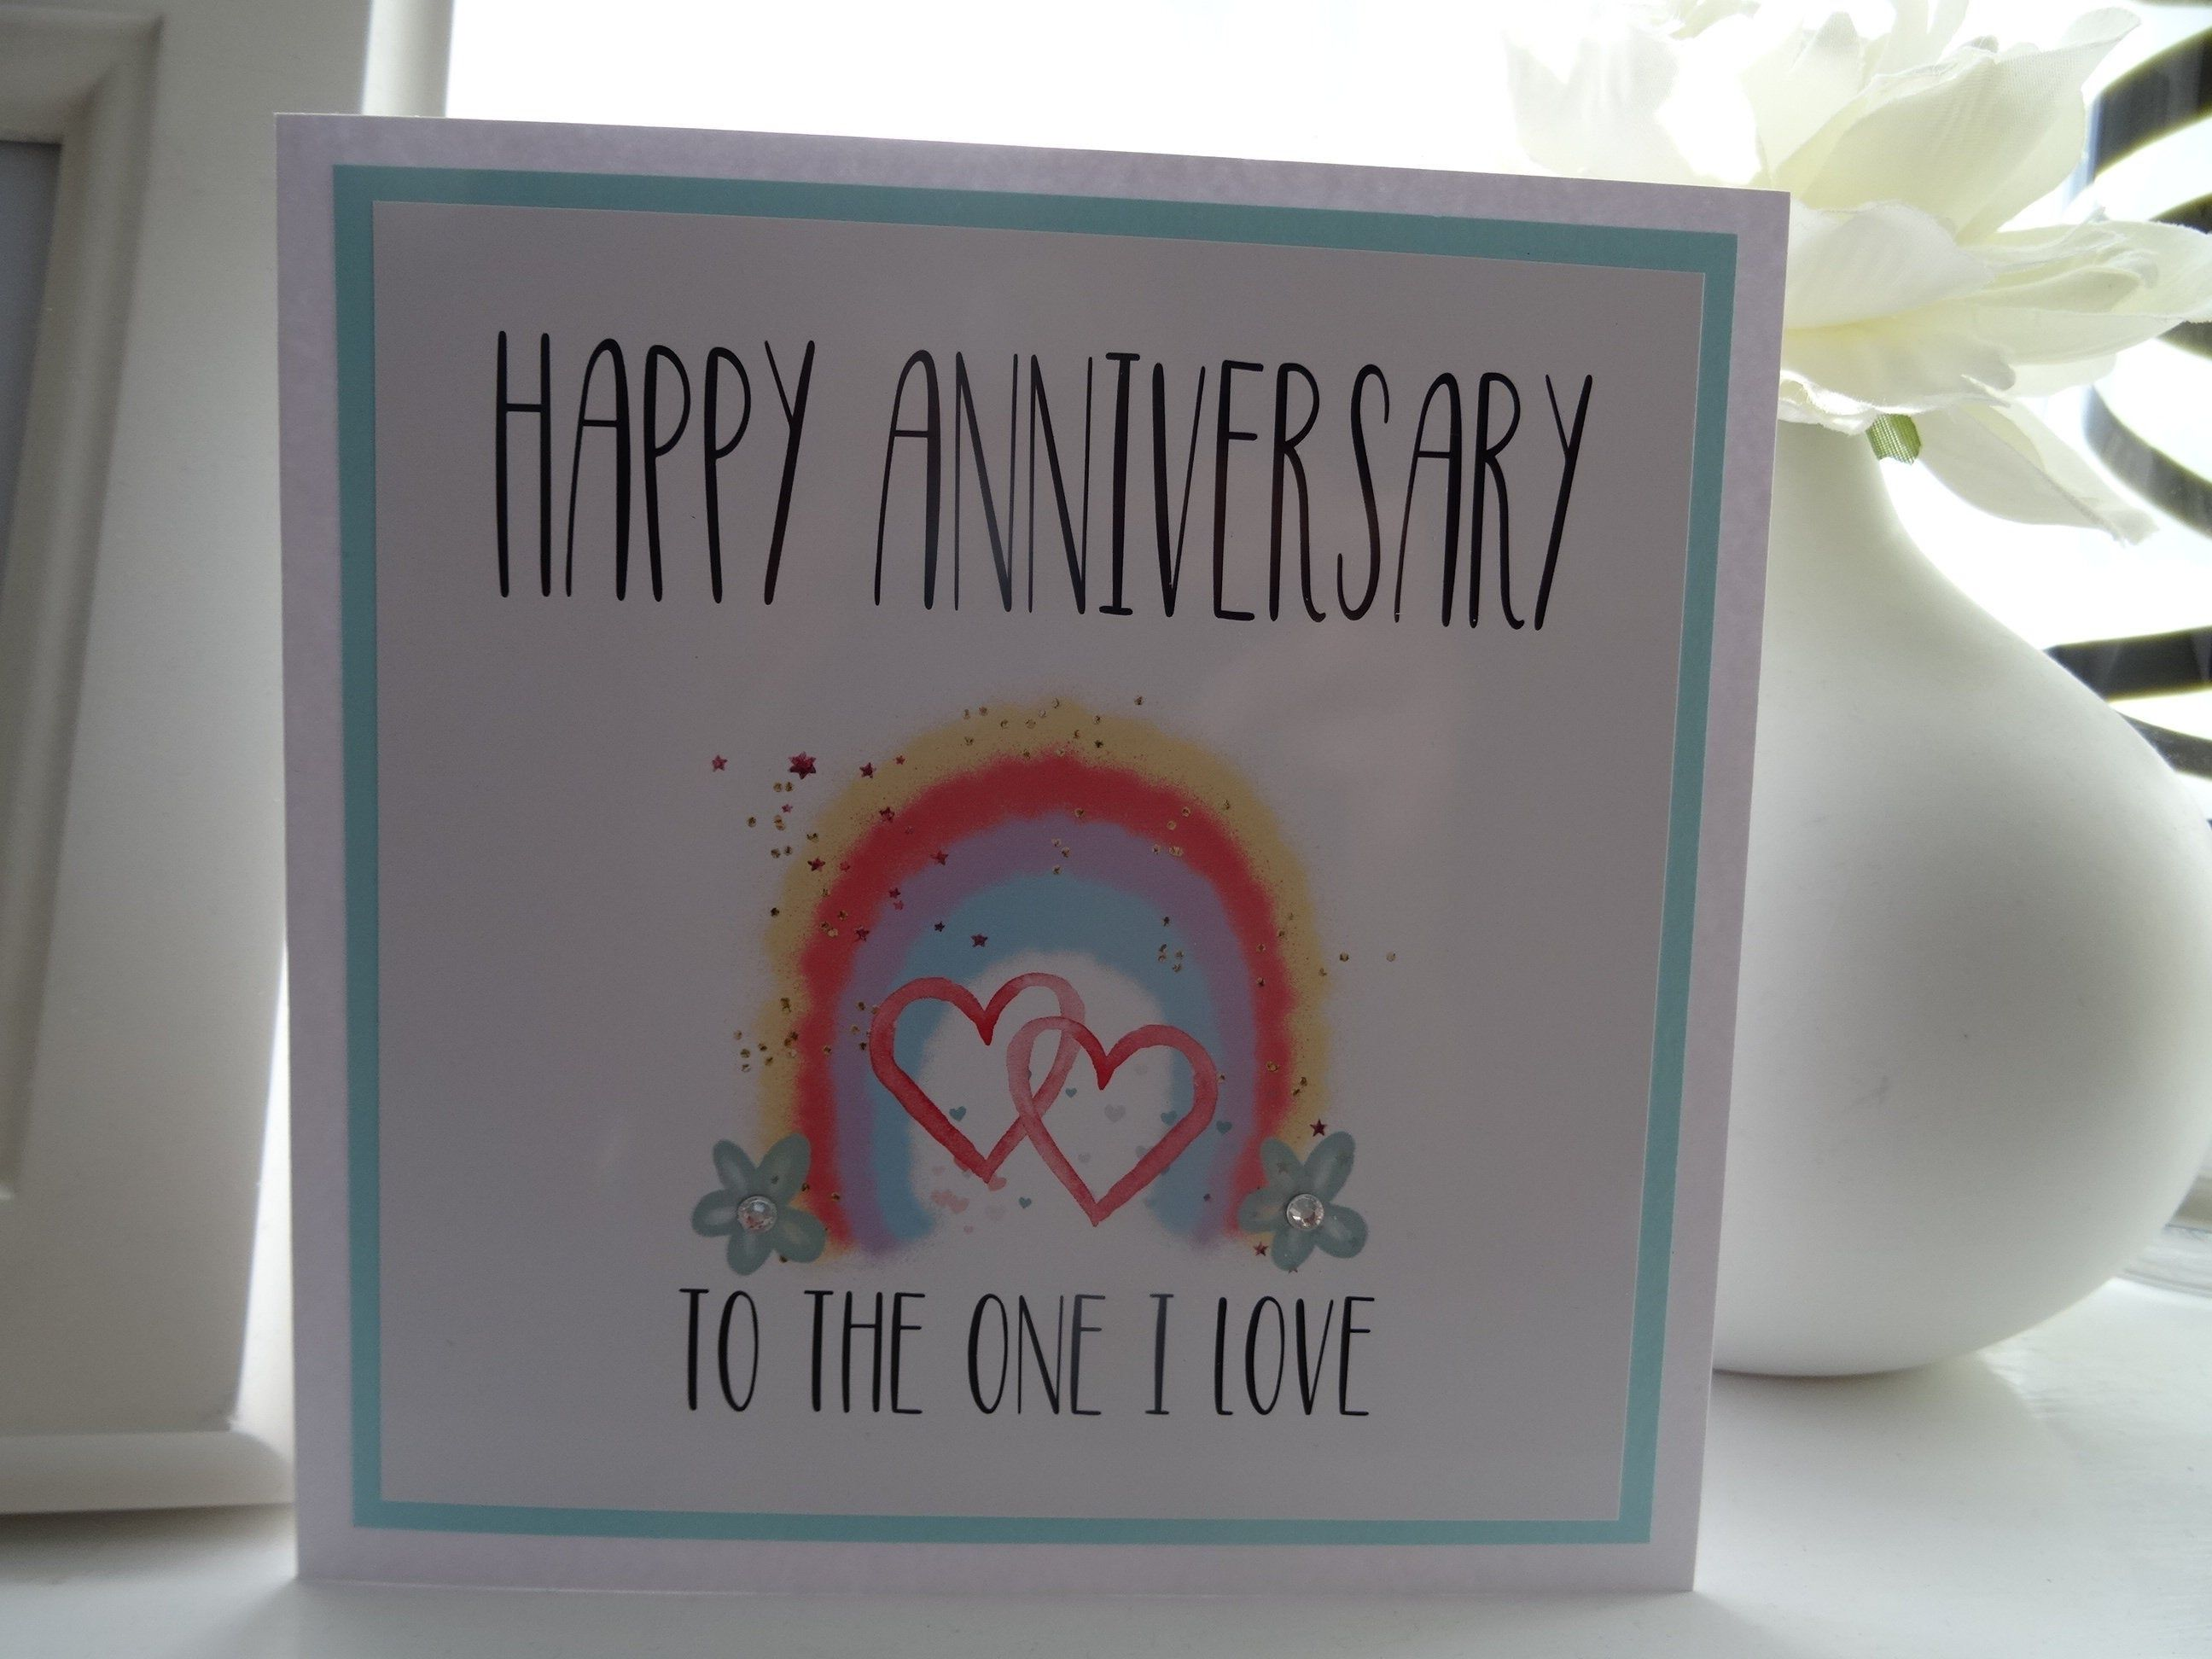 happy anniversary to the one i love handmade card with